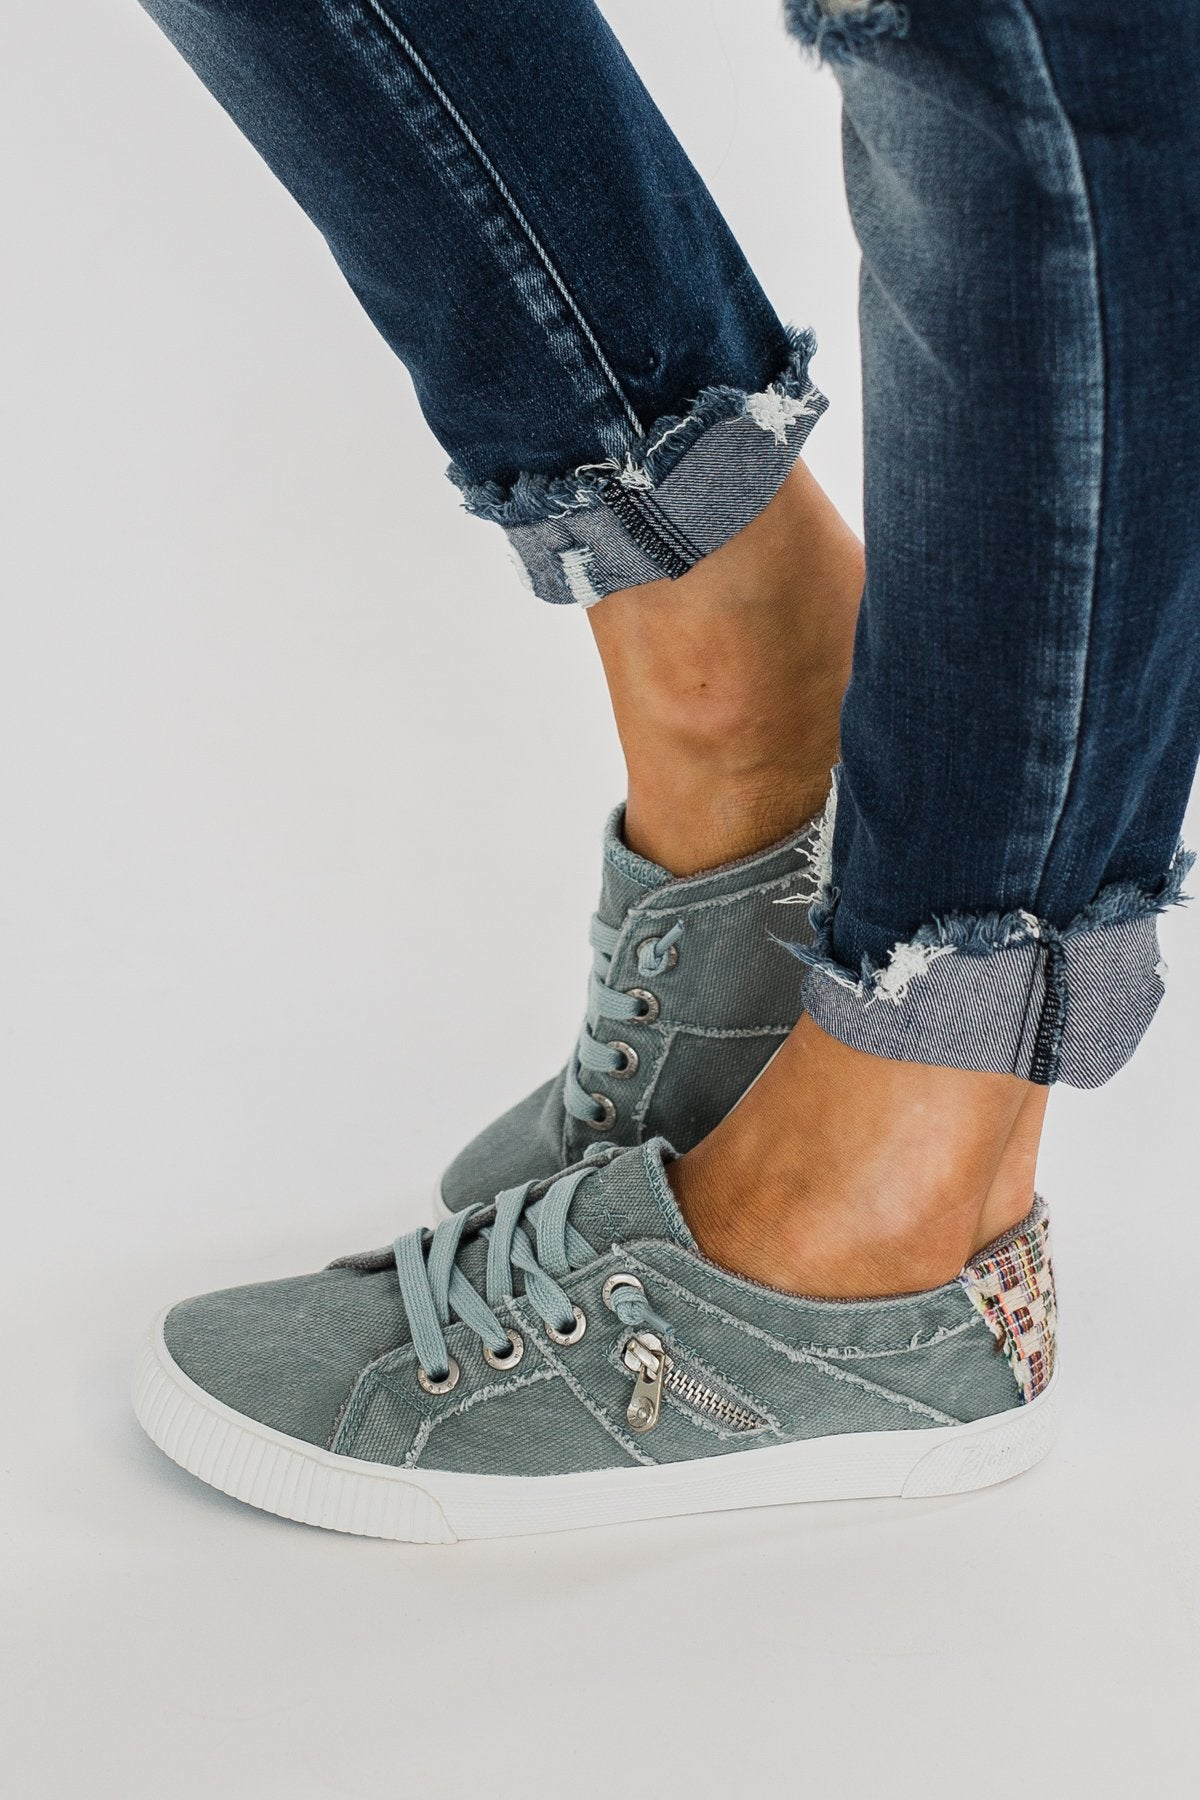 Blowfish Fruit Sneakers- Dusty Blue Smoked